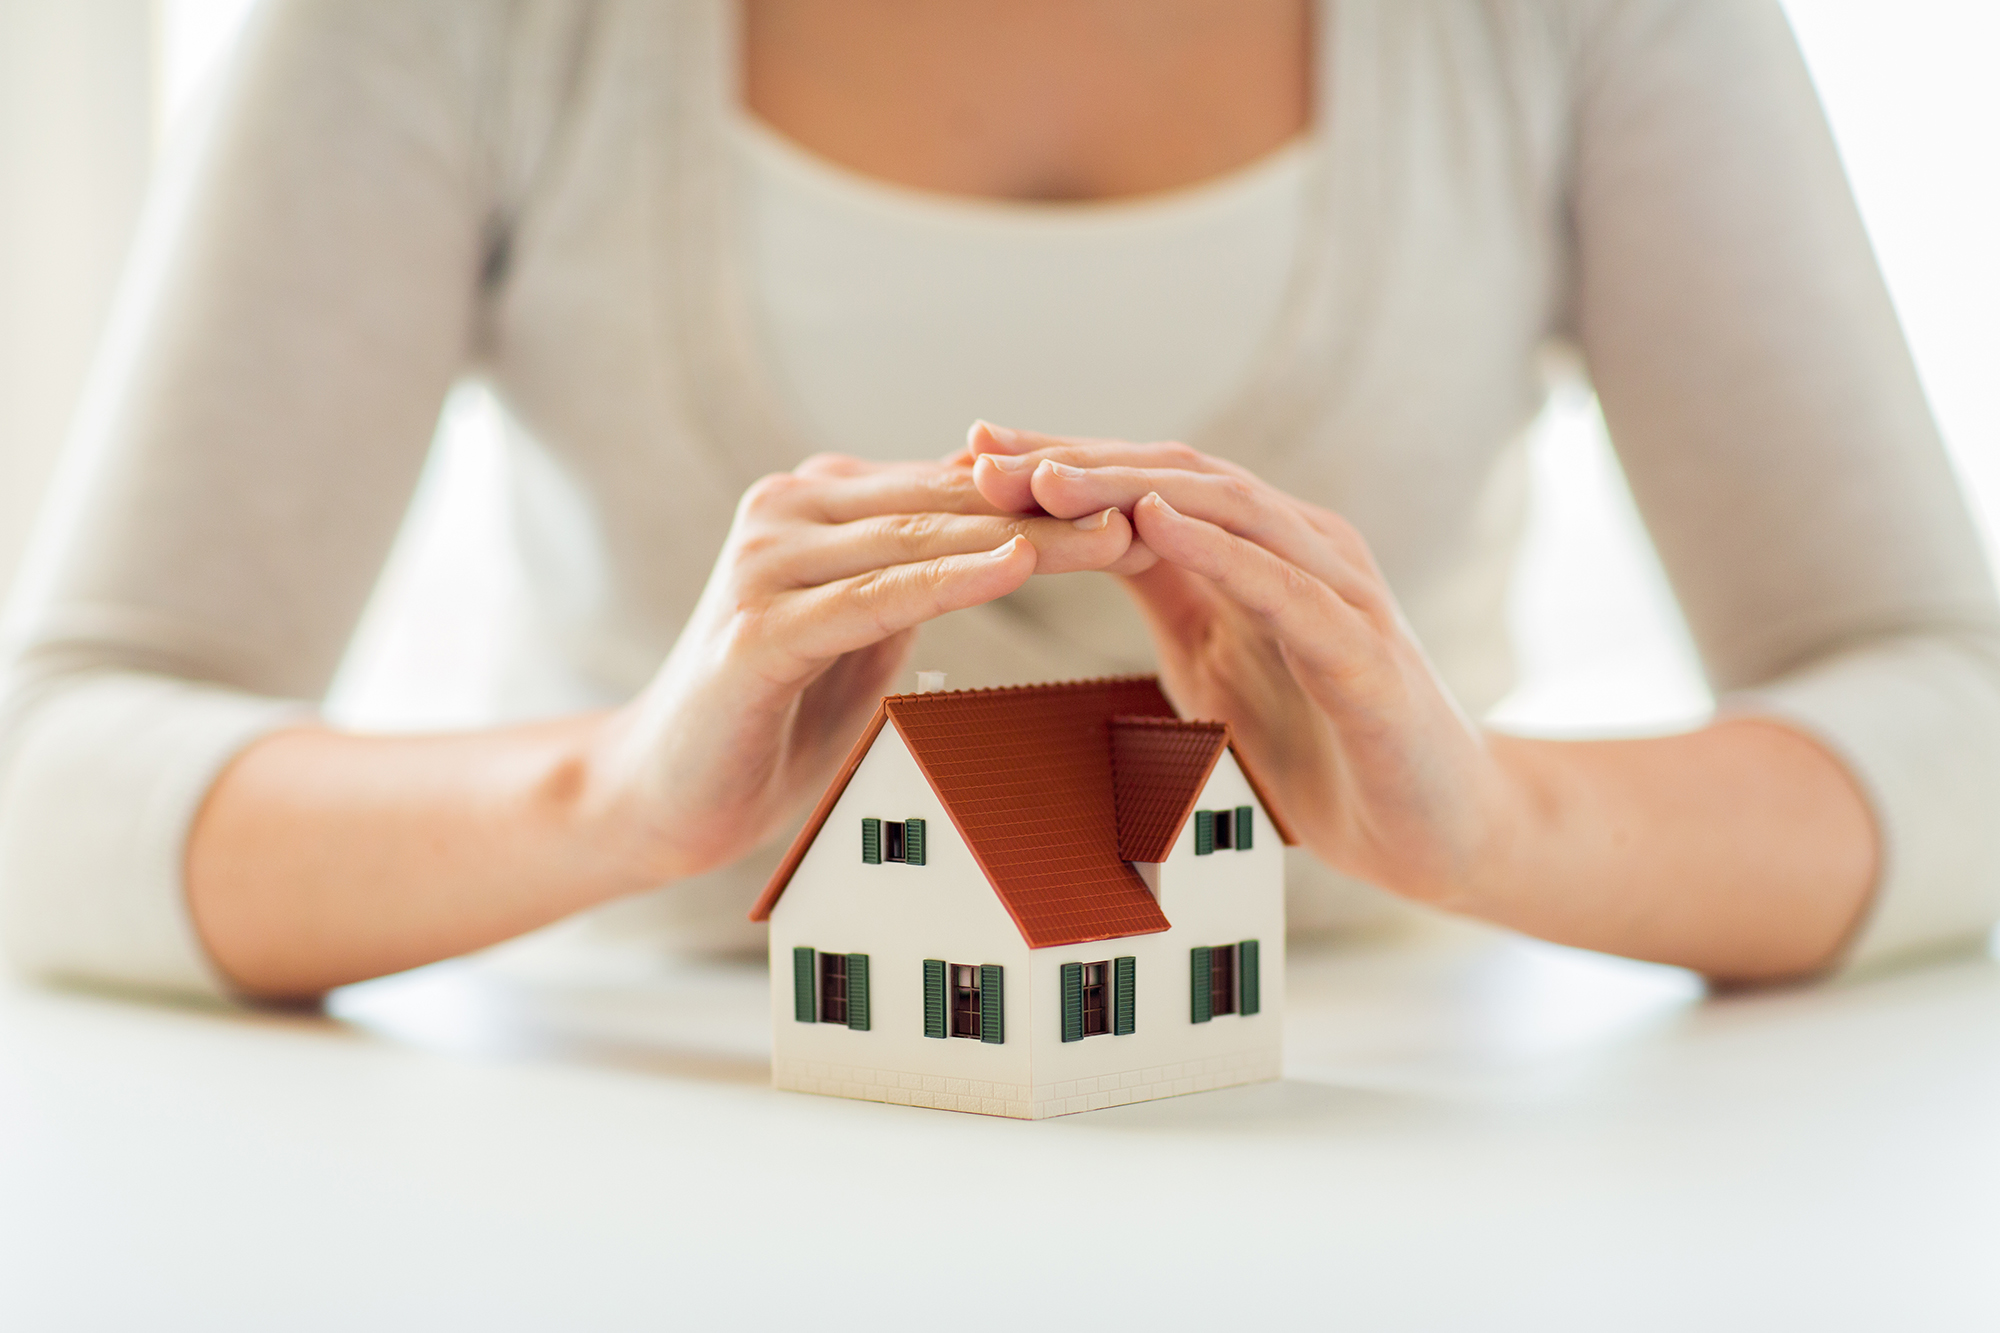 Home Insurance policies available at Kenny Insurance Brokers